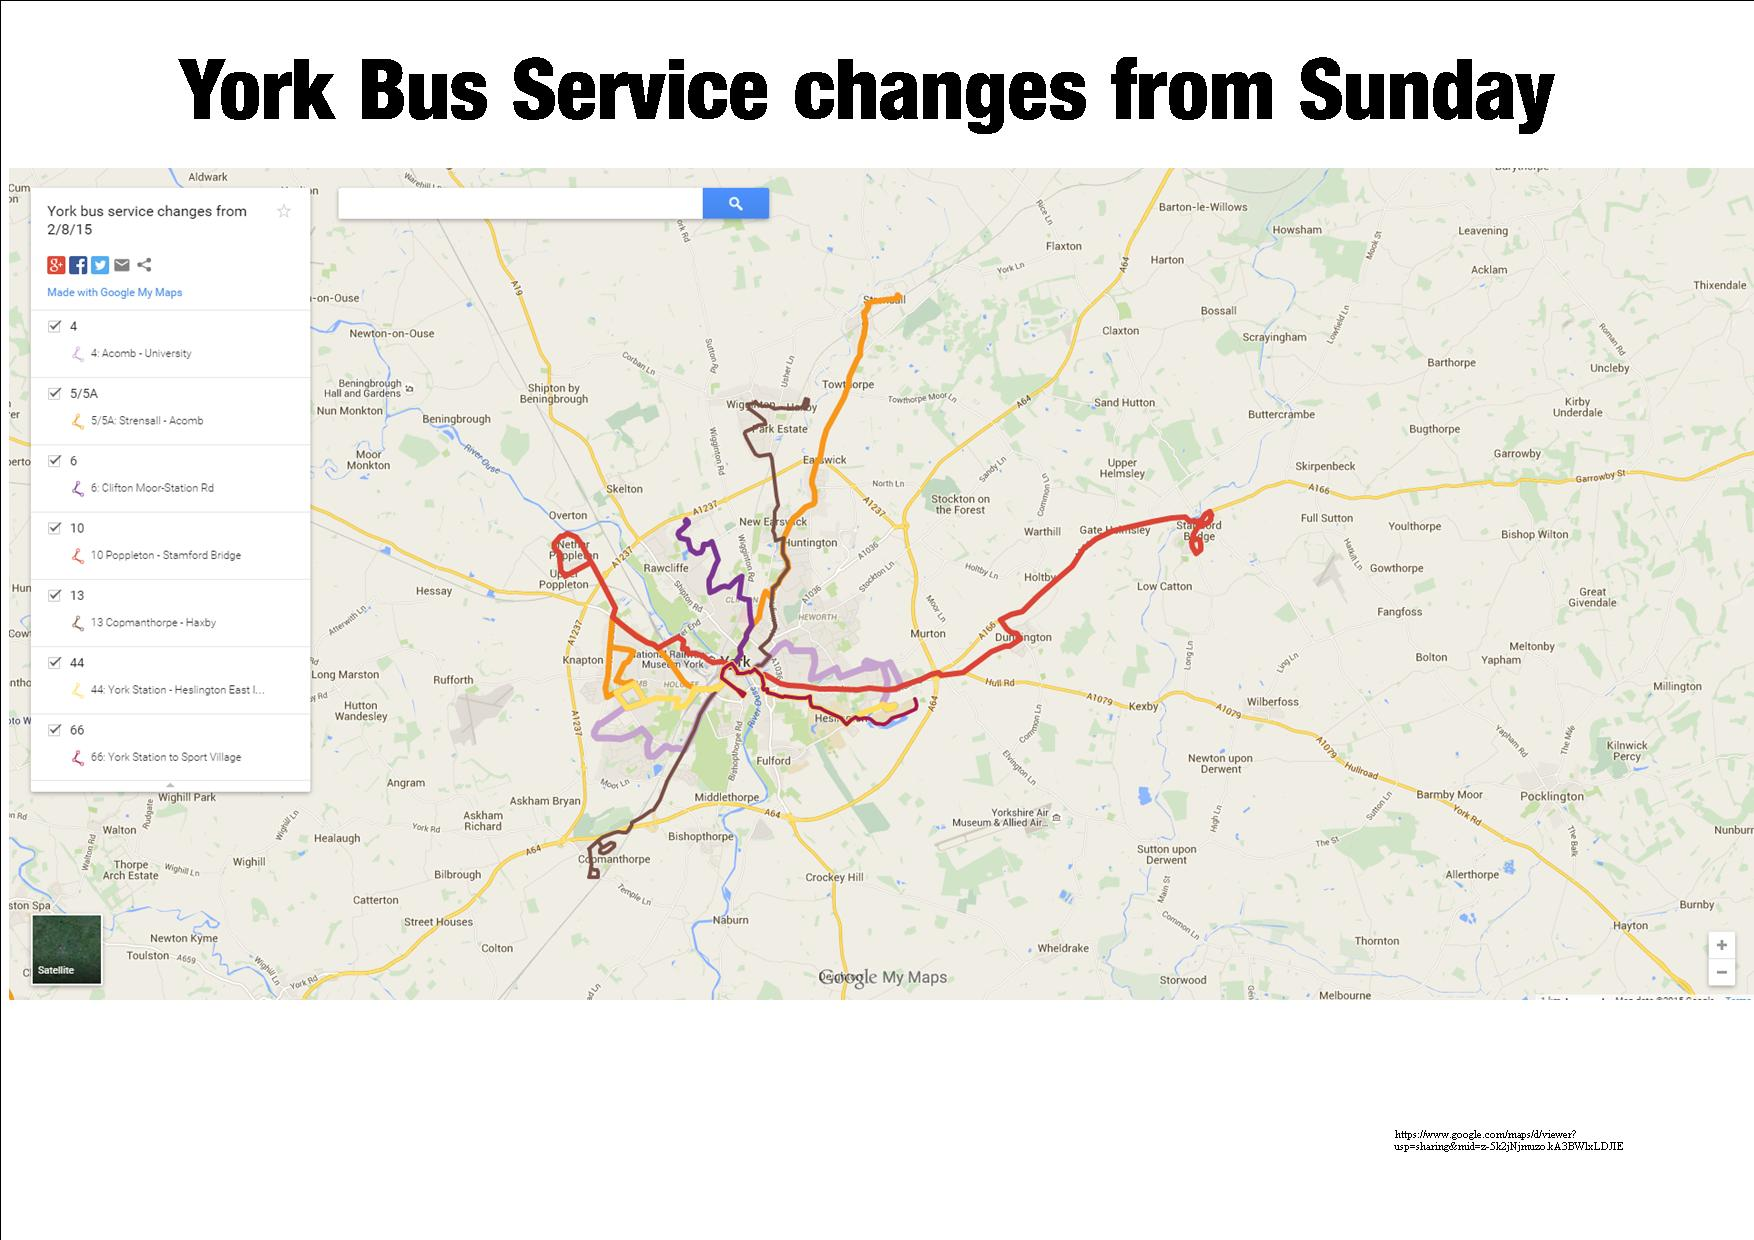 York bus service chnages 2nd Aug 2015